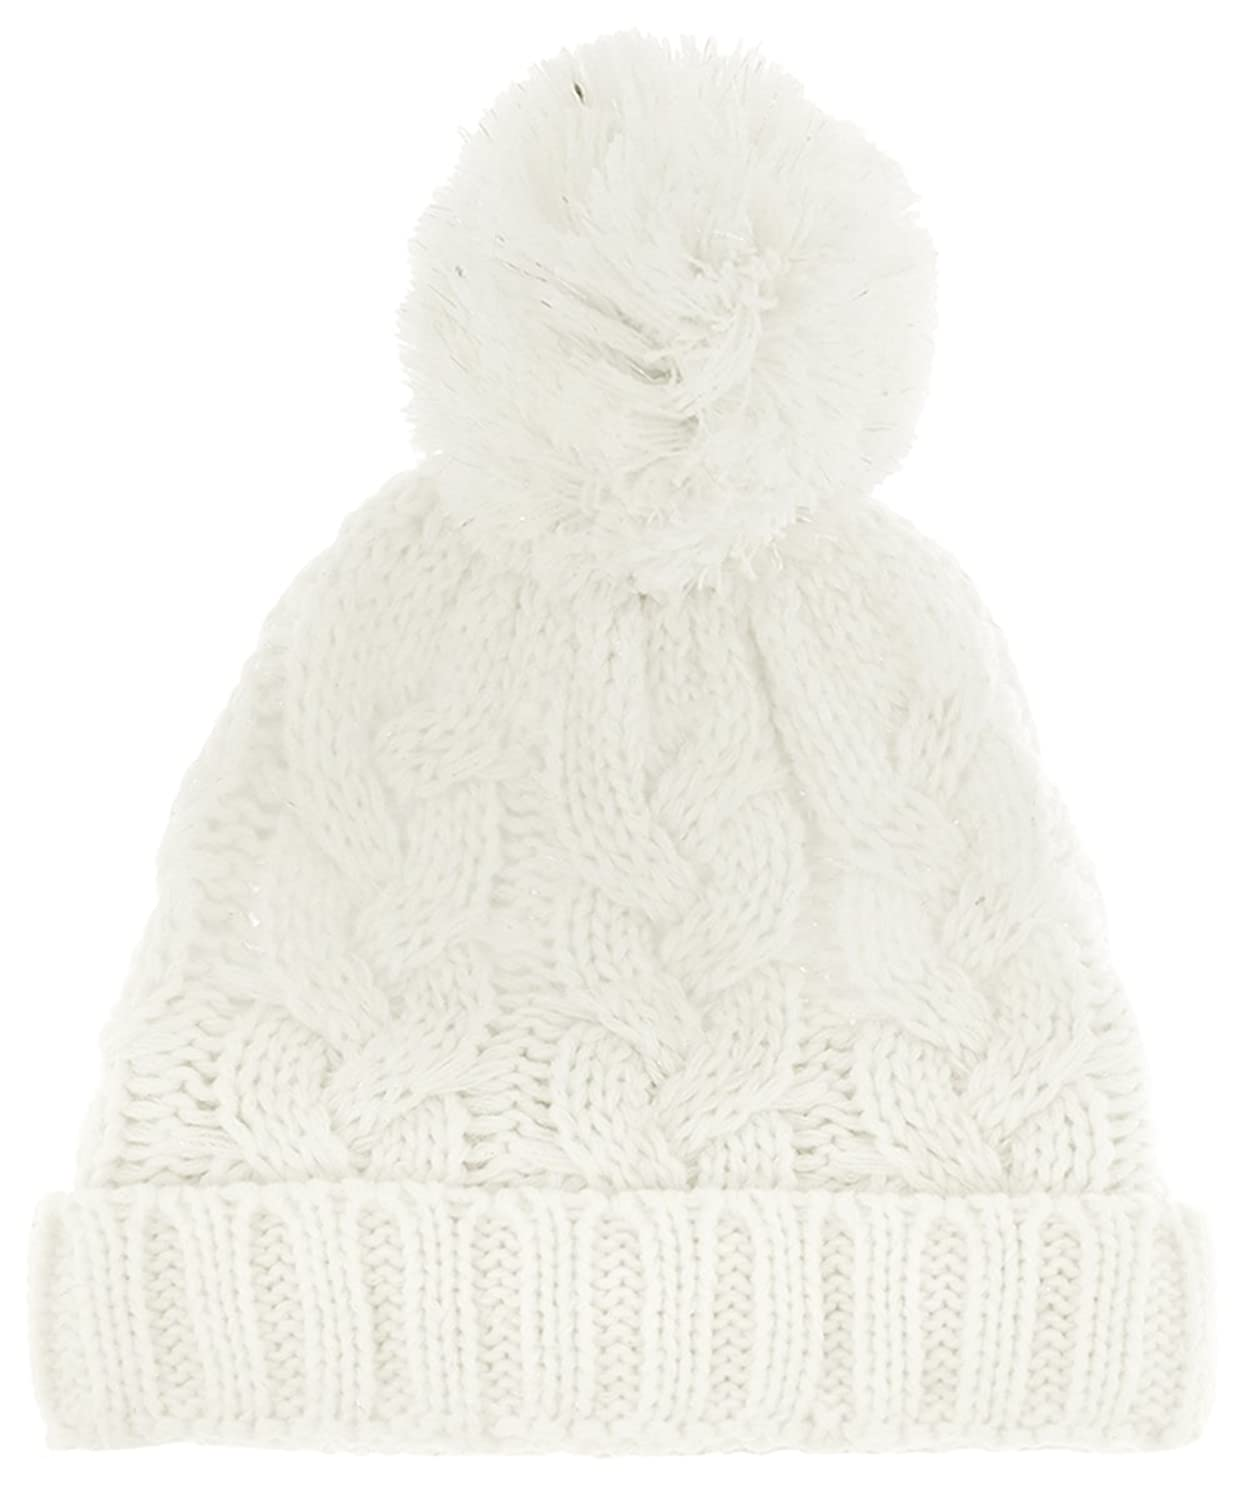 Capelli New York Chunky Cable With Metallic Yarn Soft Acrylic Cuff Hat With Pom